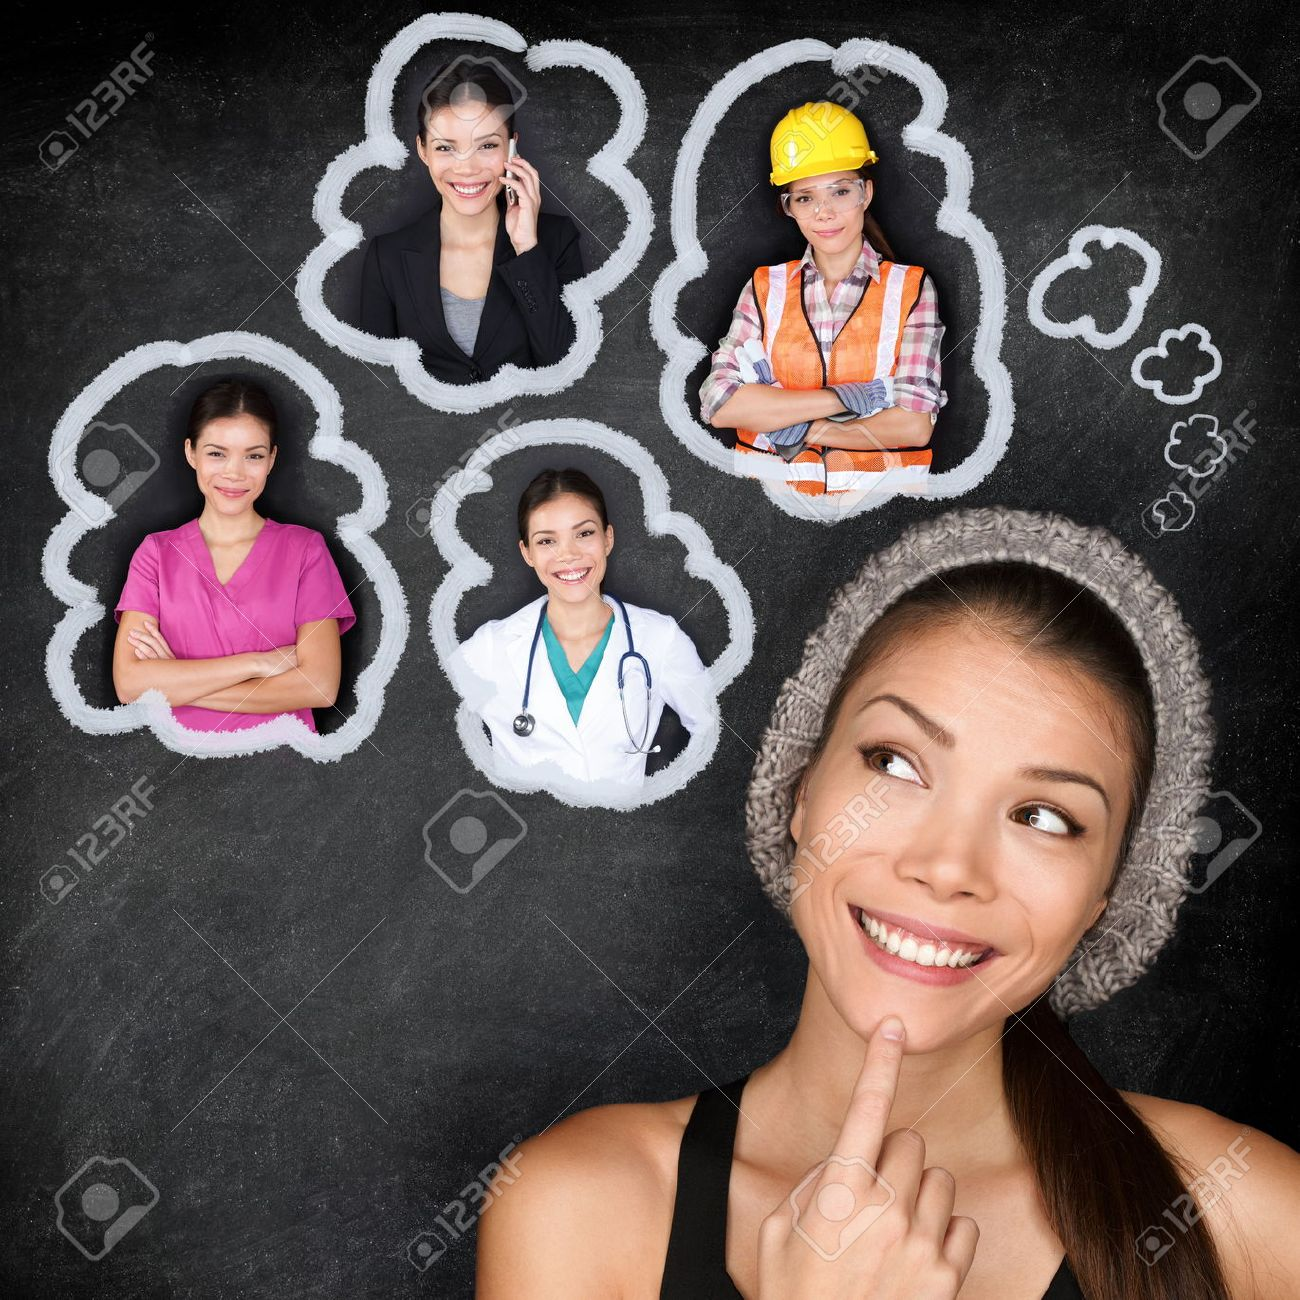 Career choice options - student thinking of future education. Young Asian woman contemplating career options smiling looking up at thought bubbles on a blackboard with images of different professions Stock Photo - 25512990